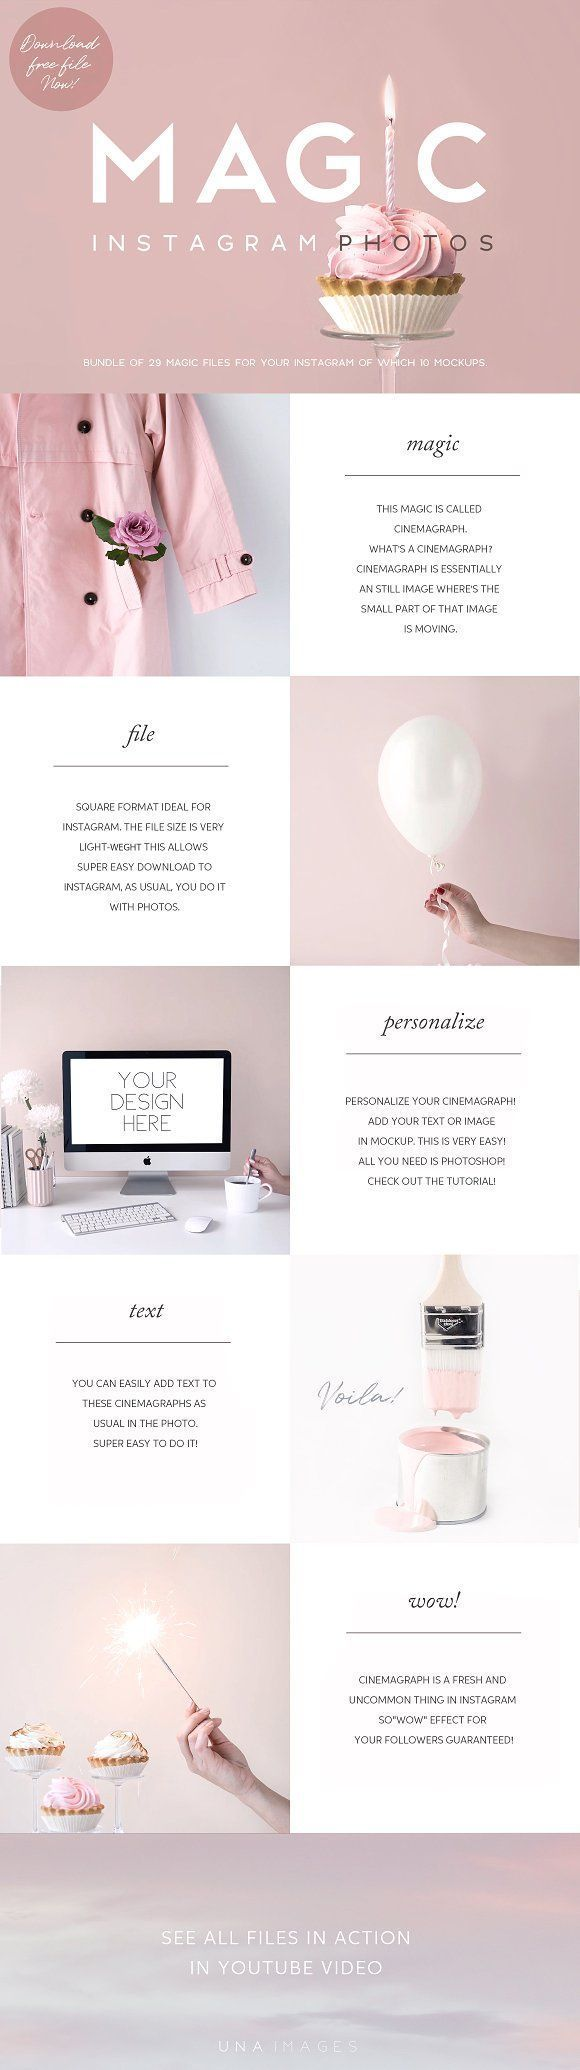 Animated Instagram Photos+FREE FILE  by una images on @creativemarket